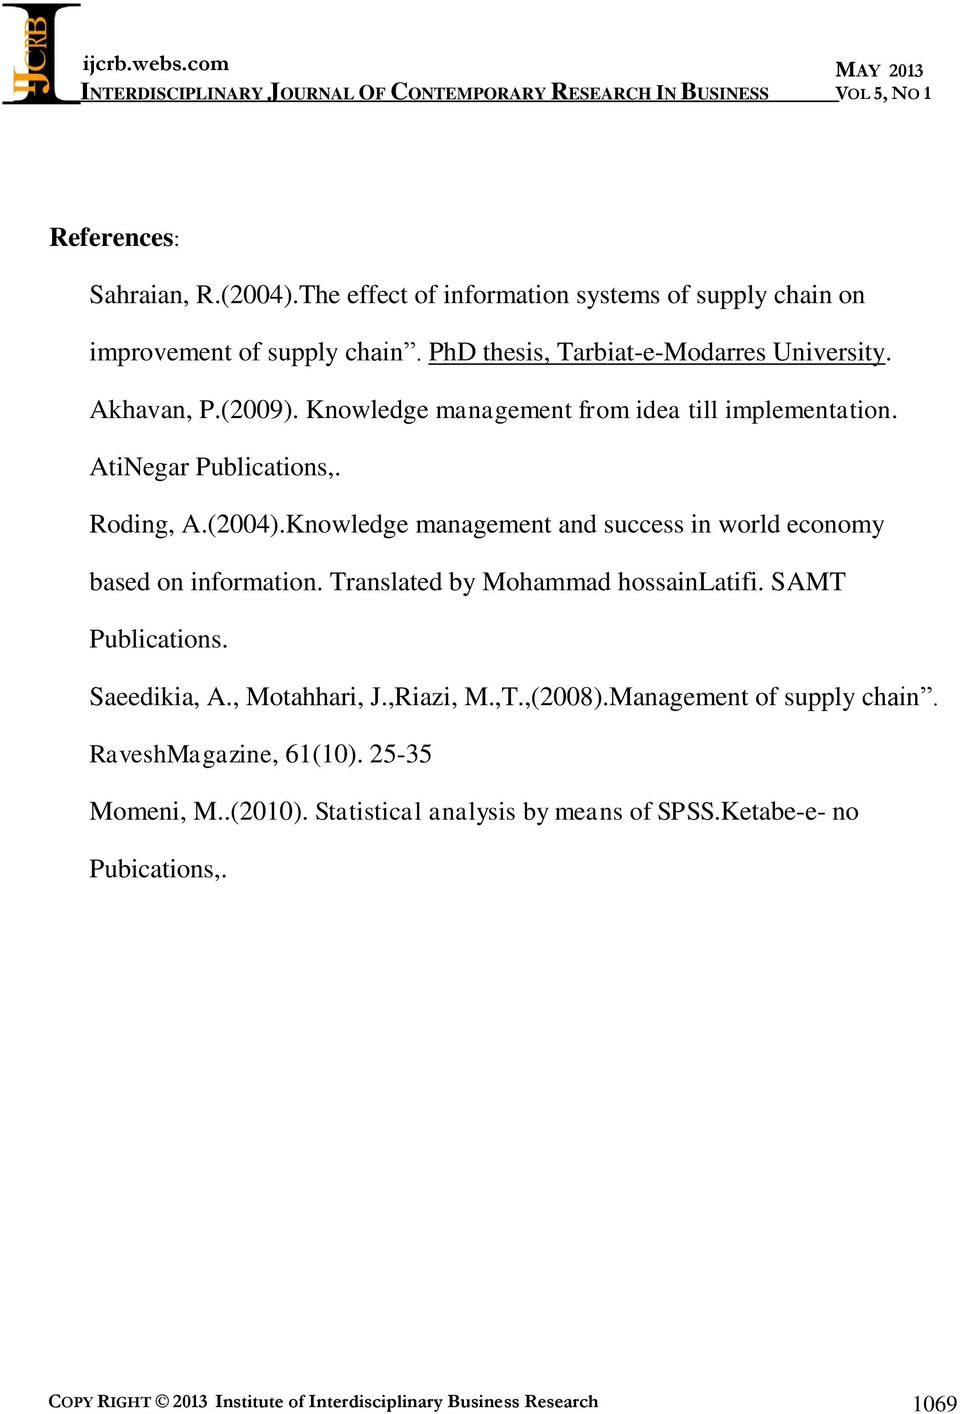 Knowledge management and success in world economy based on information. Translated by Mohammad hossainlatifi. SAMT Publications. Saeedikia, A., Motahhari, J.